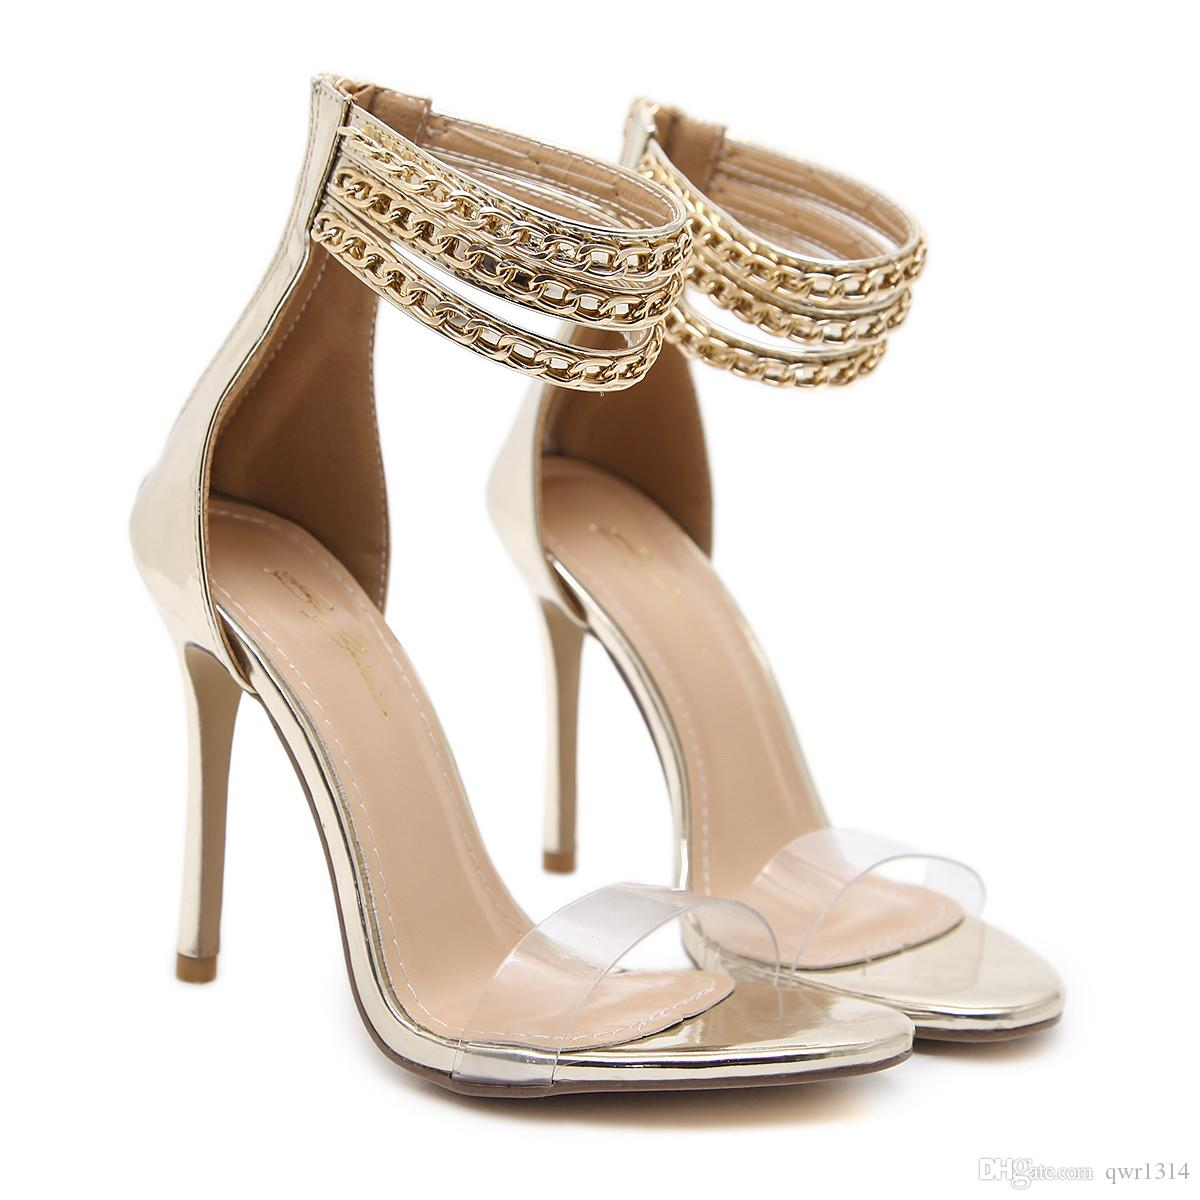 New Fashionl Women High Heel pumps open Toe Roman style metal chain Catwalk show style sandals Sexy Lady party shoes Plus Size